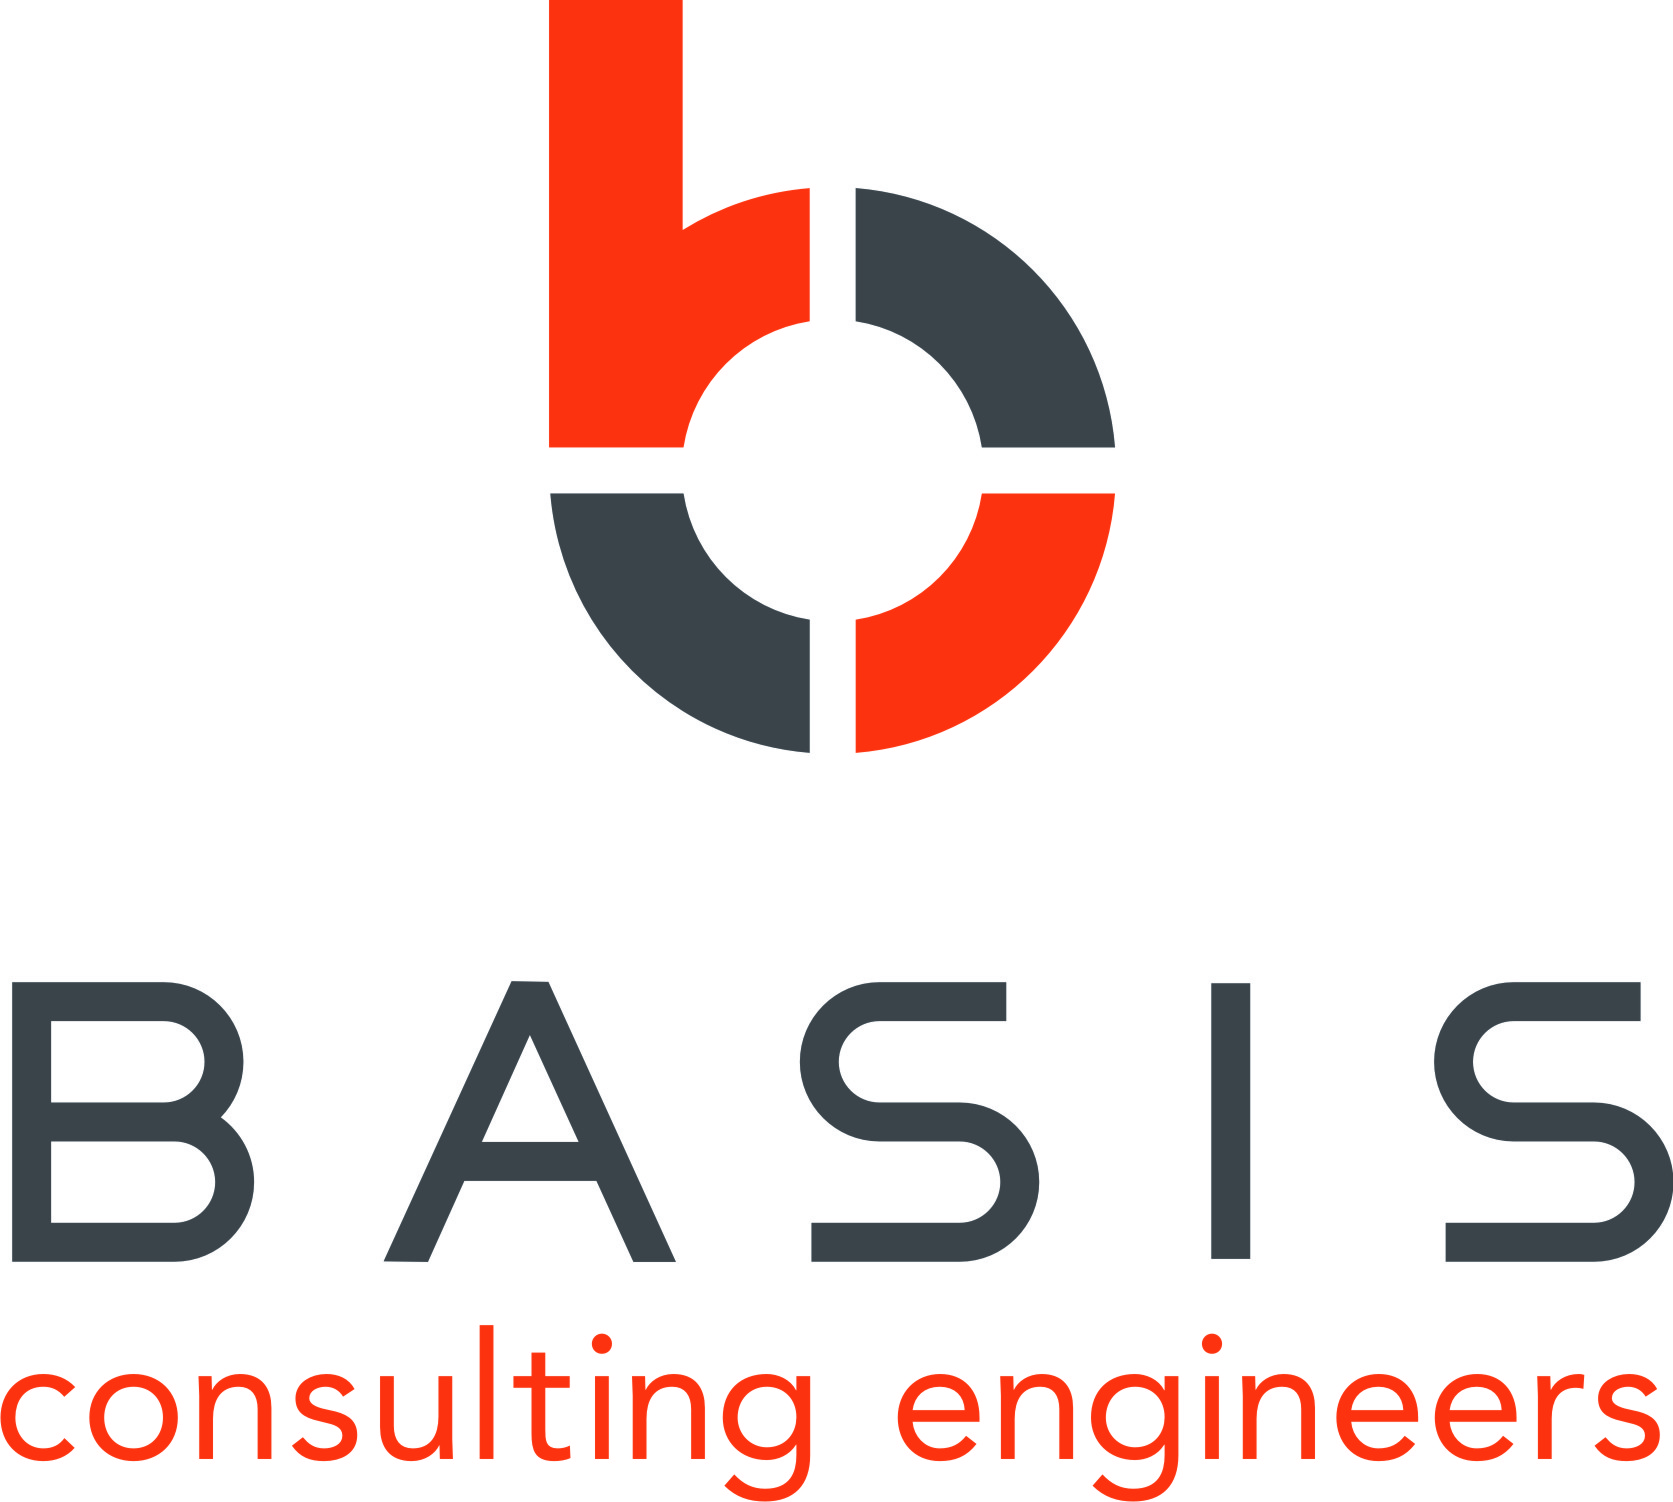 Basis consulting engineers